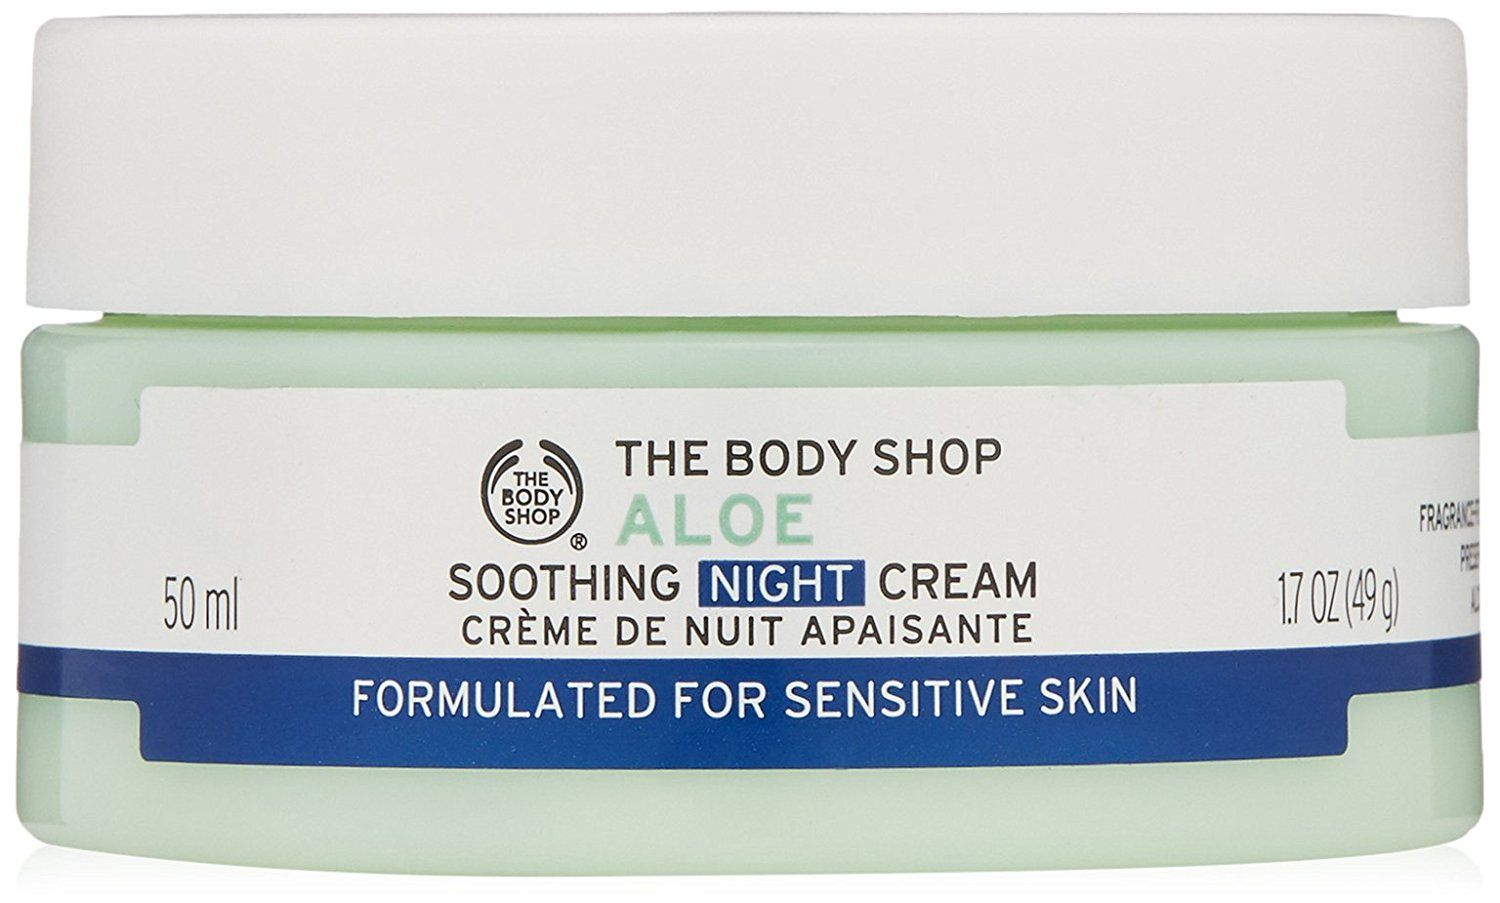 Pin By Danna Cabrera On Face Skin Care The Body Shop Paraben Free Face Moisturizer Night Creams